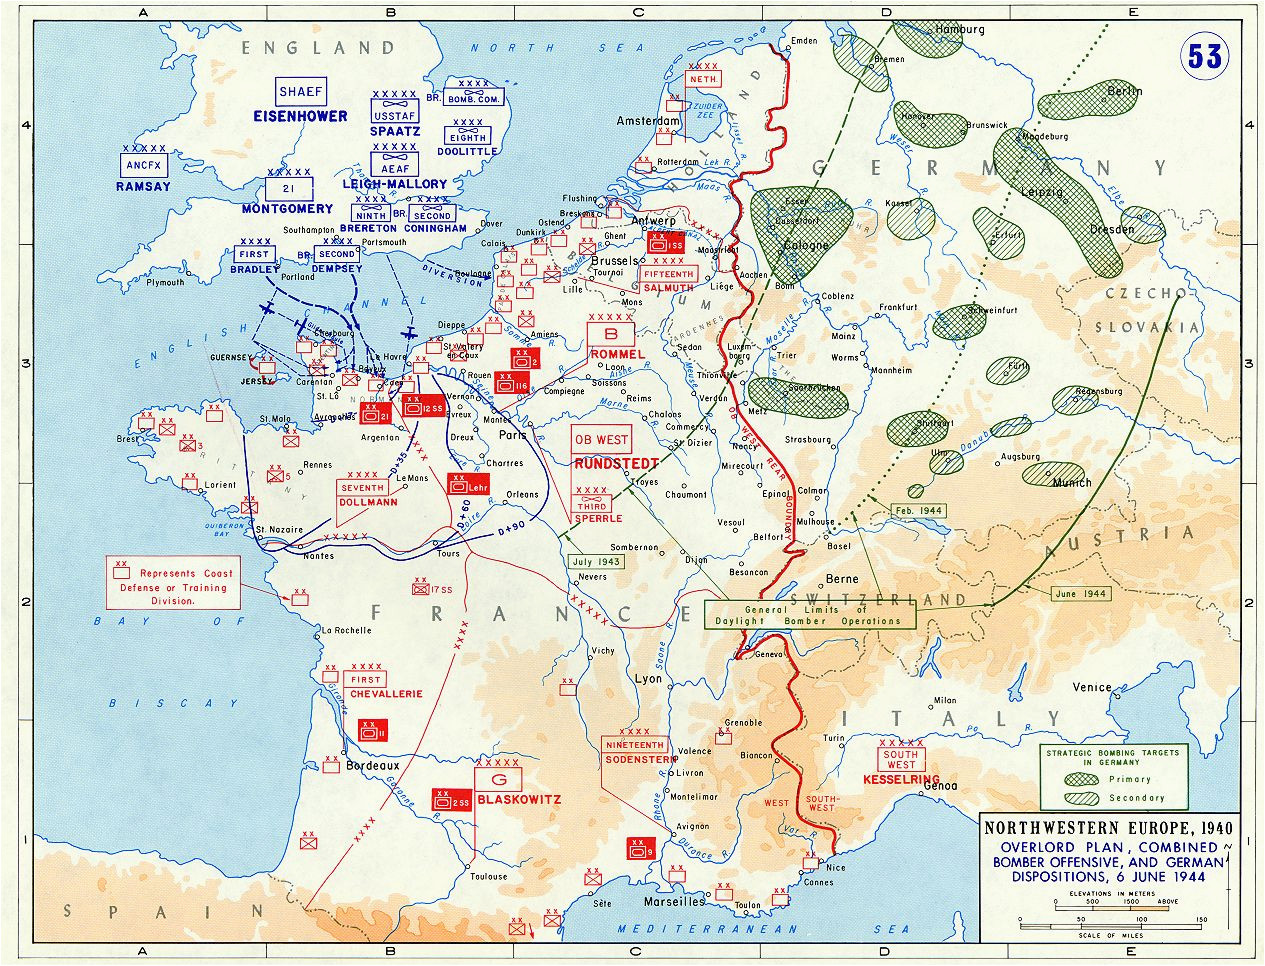 overlord plan combined bomber offensive and german dispositions 6